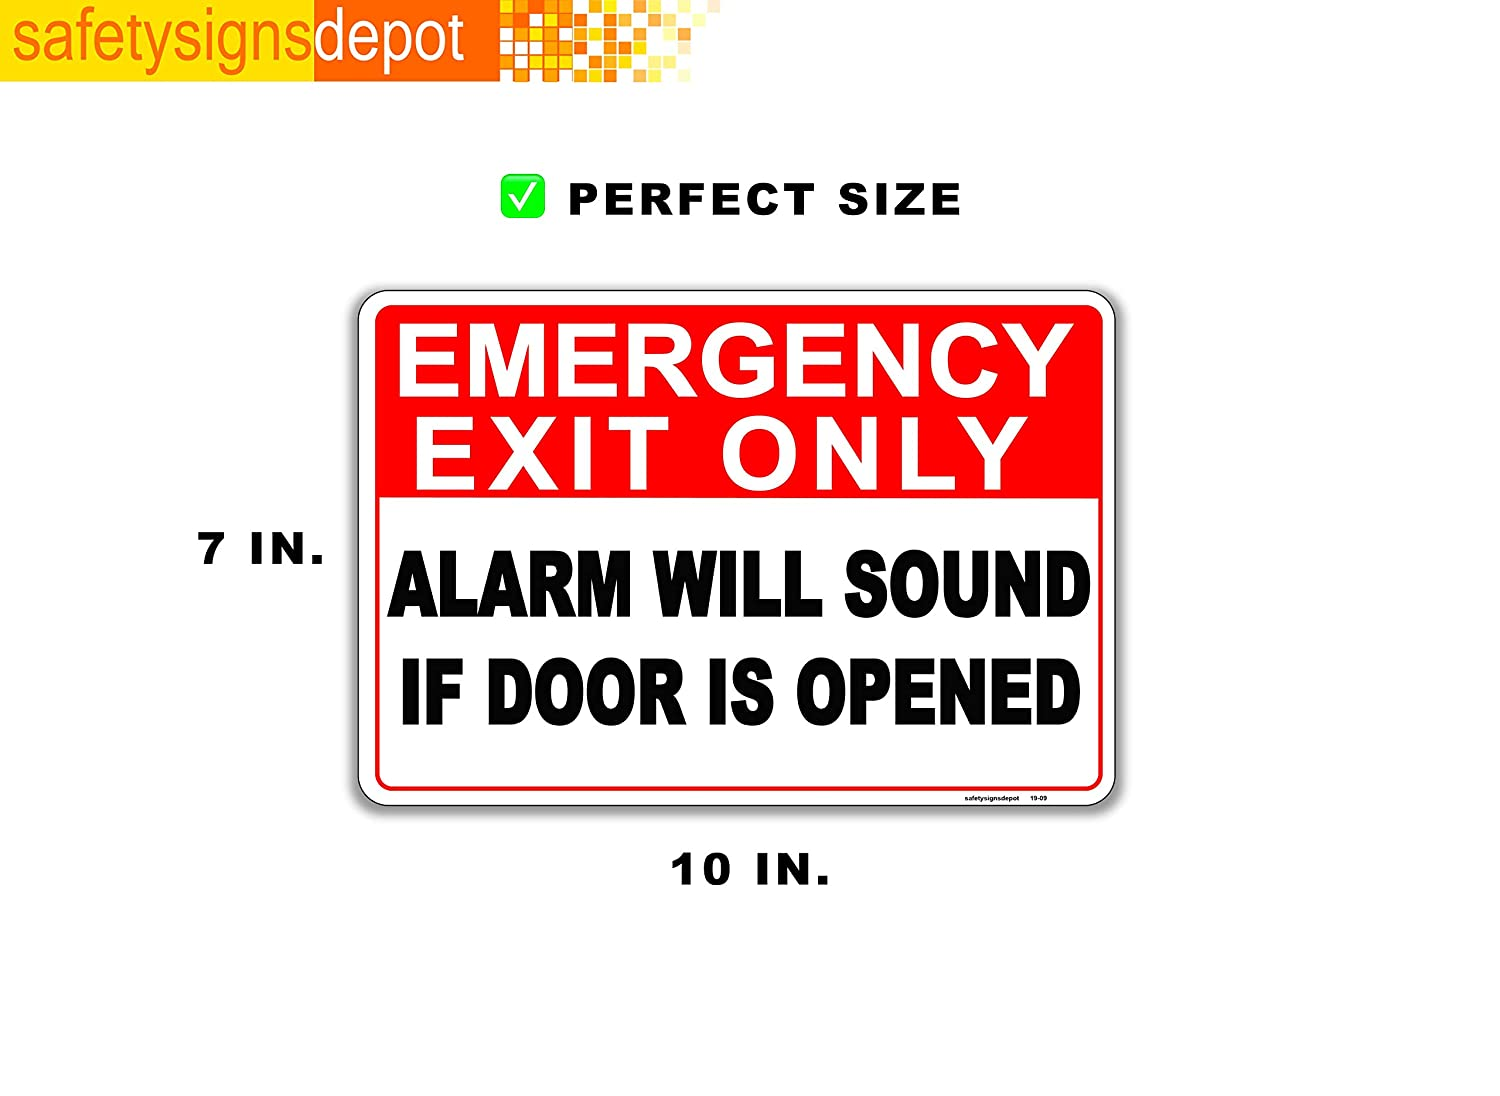 Indoor//Outdoor Adhesive Sticker Signs 7 x 10 UV Protected Emergency Exit Only Alarm Will Sound If Door is Opened Sign Stickers Reflective 2 Pcs Weatherproof